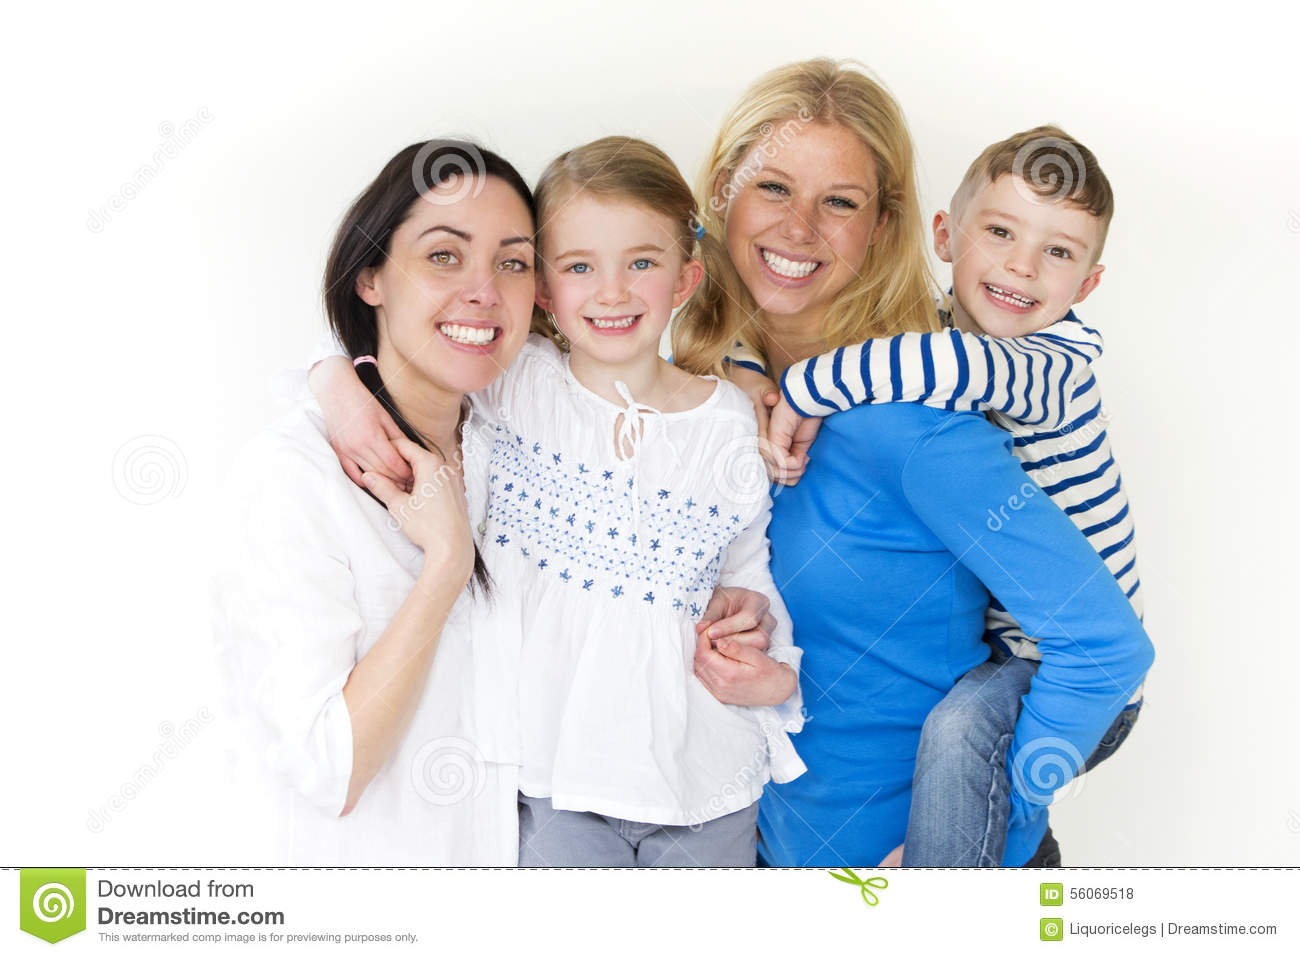 Same sex couple with their children